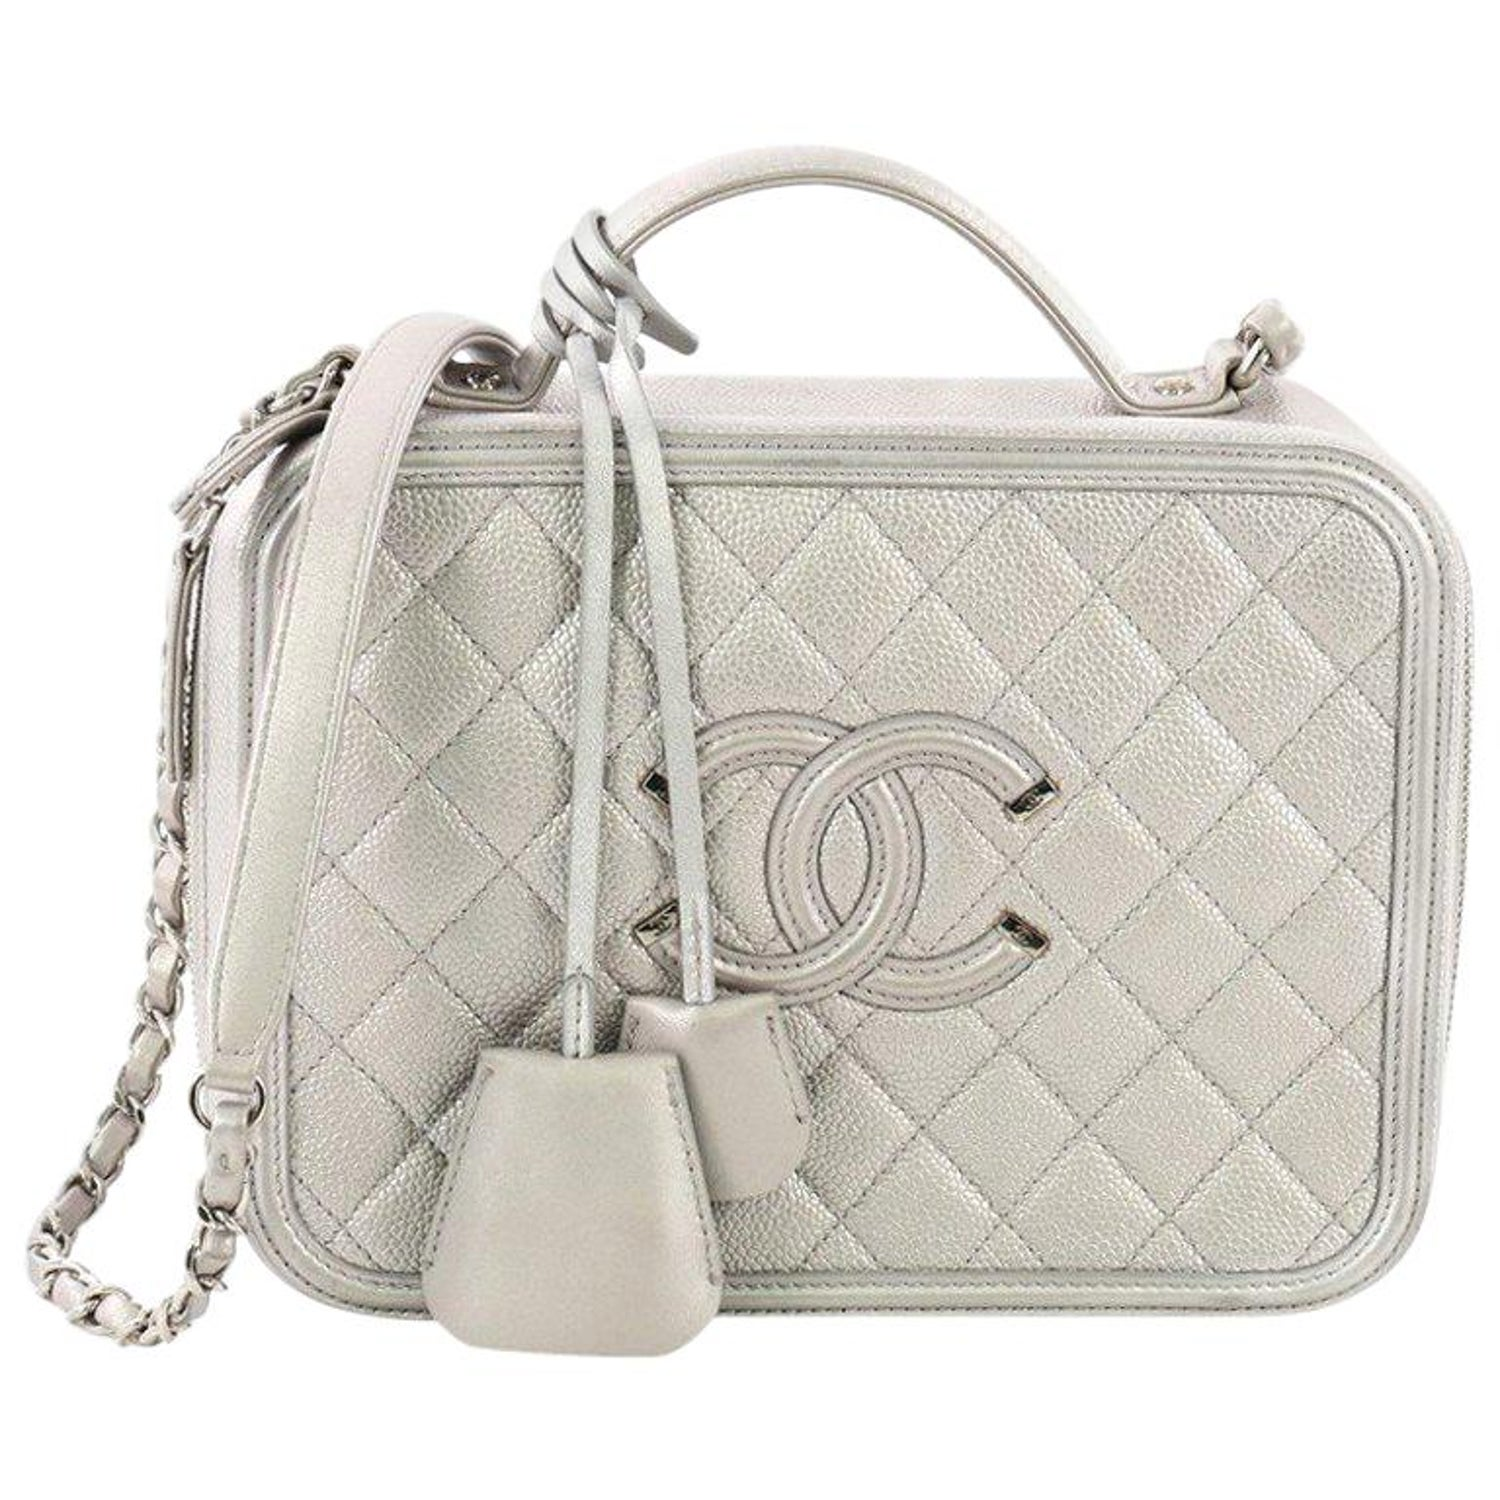 2e1349af50d9 Chanel Filigree Vanity Case Quilted Caviar Medium at 1stdibs